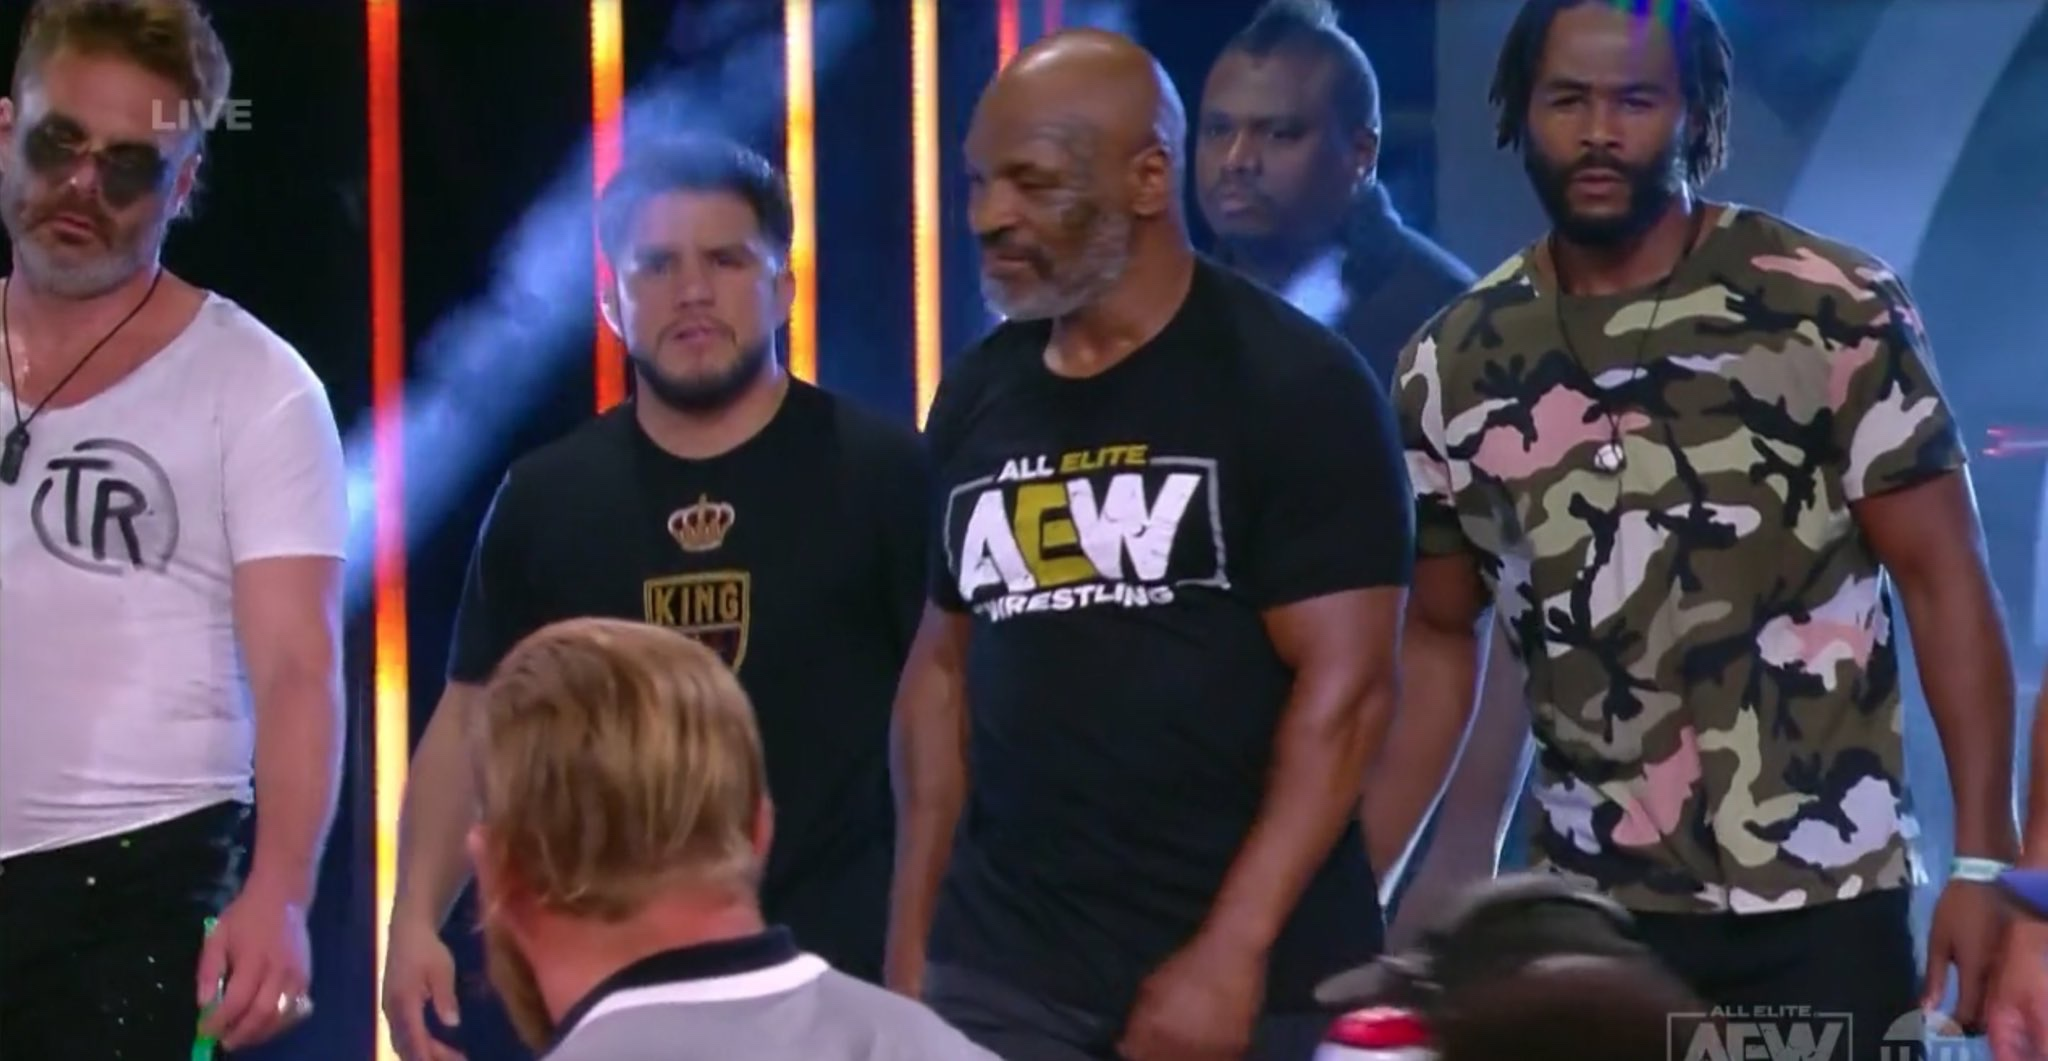 A Mike Tyson and Henry Cejudo pro wrestling tag team? Sign me up!